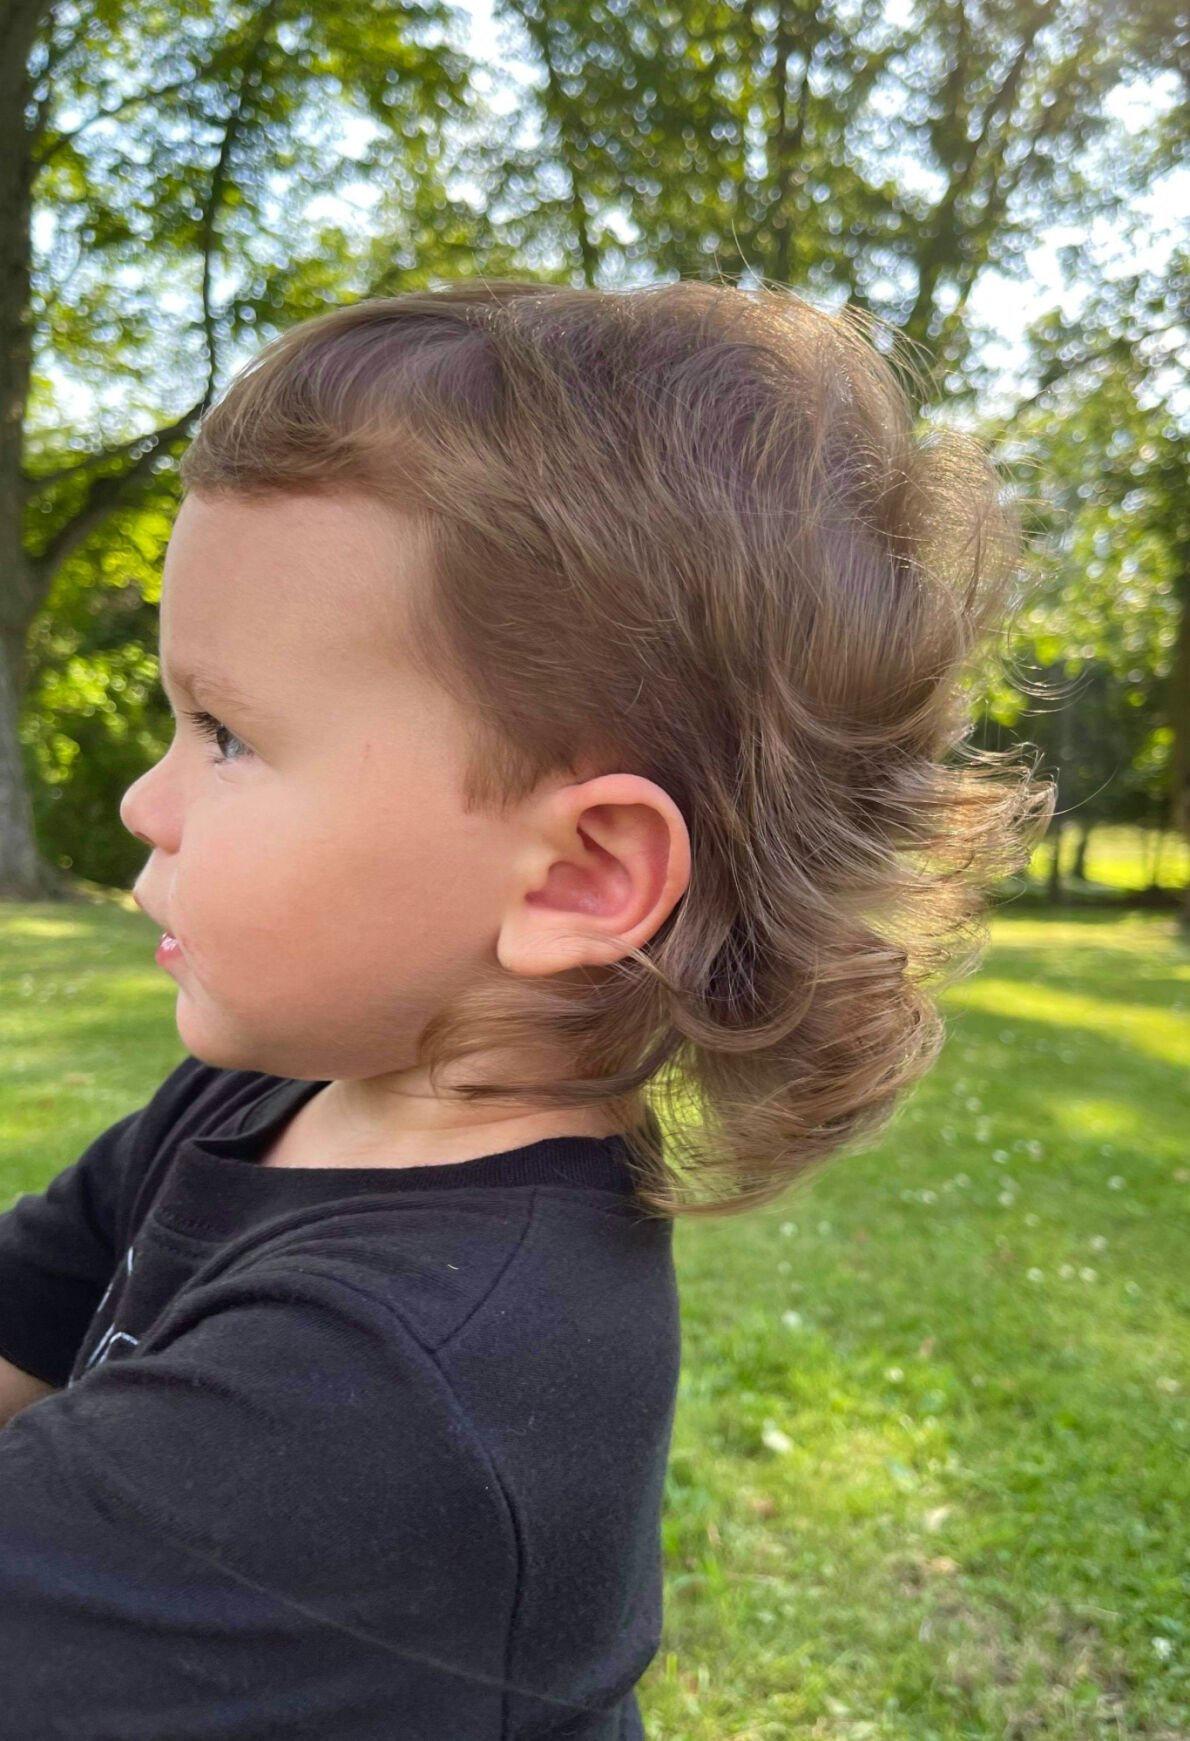 The mullet returns '80s hairstyle is making a comeback